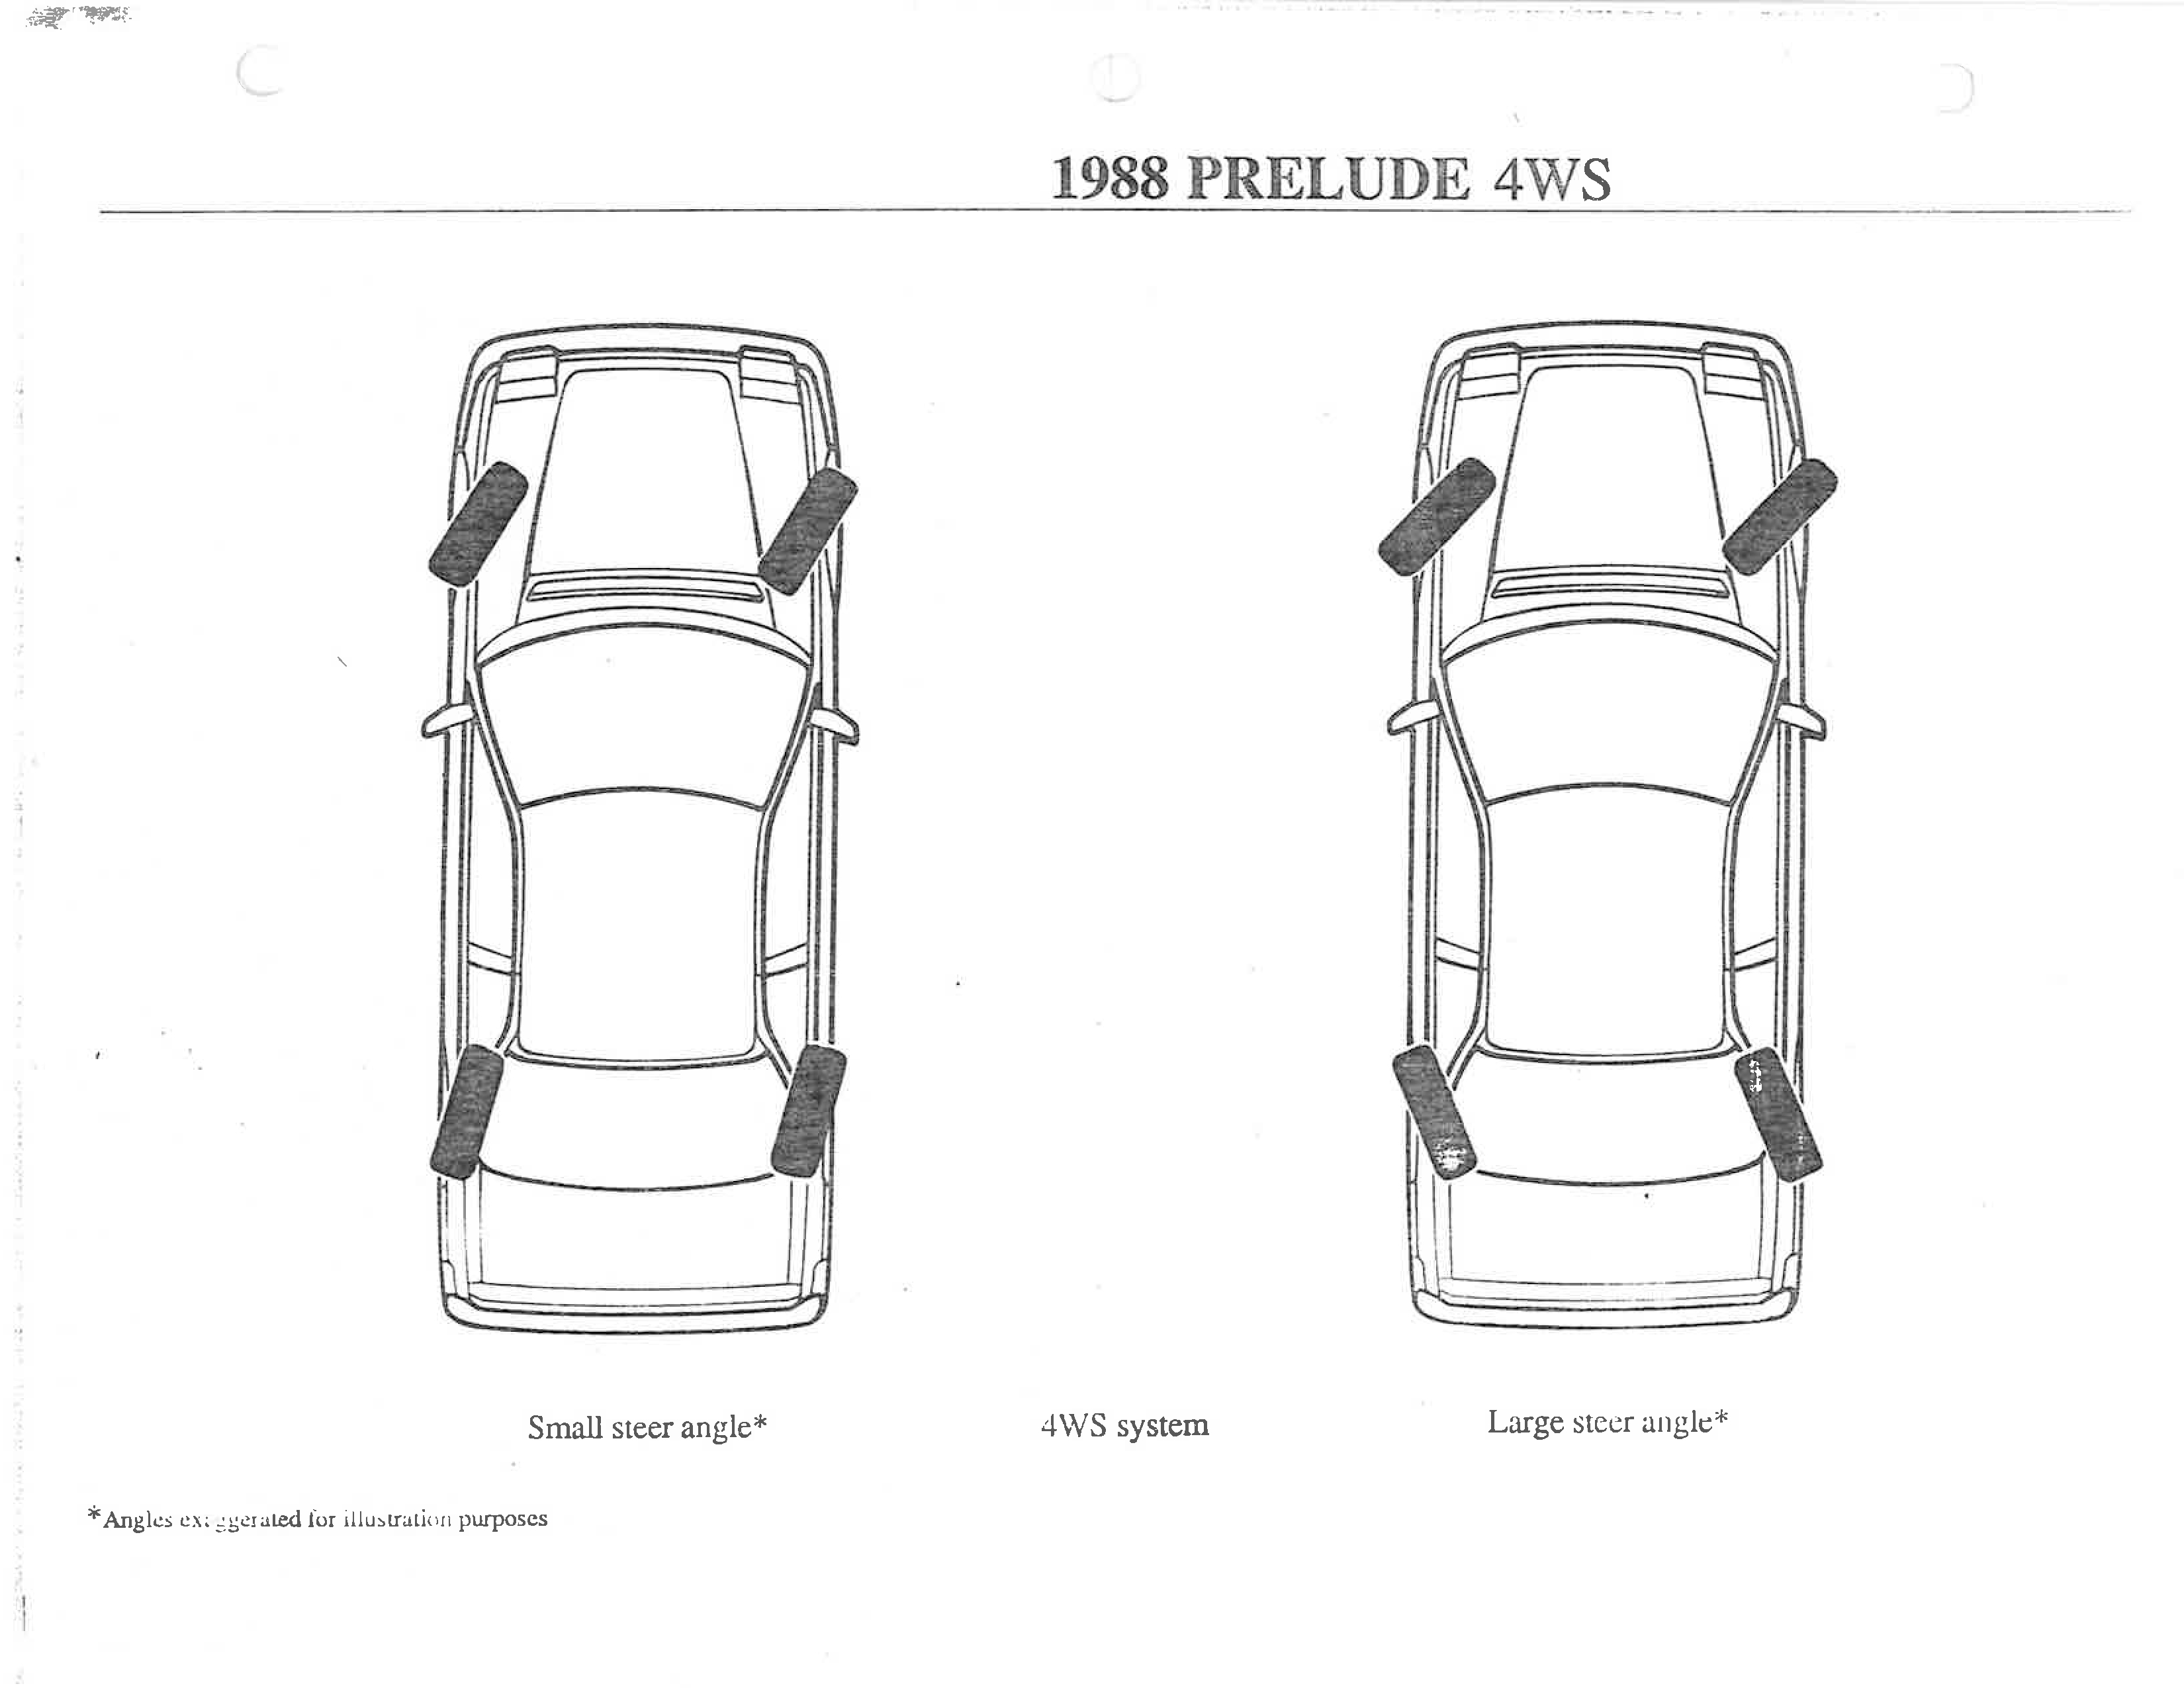 The engineering diagram for 4WS on the Honda Prelude Si.